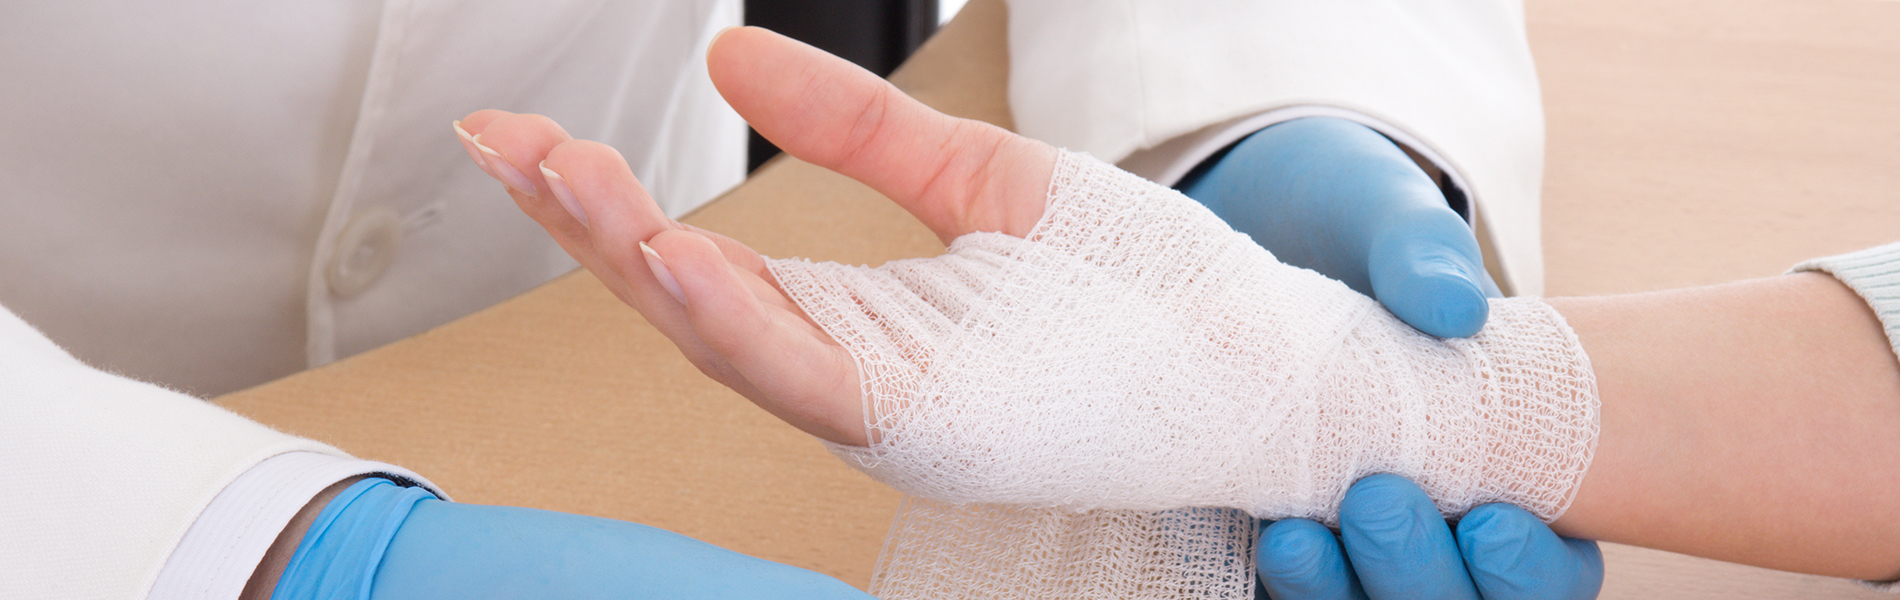 How Arm Pain At Workplace Can lead to Repetitive Strain Injury